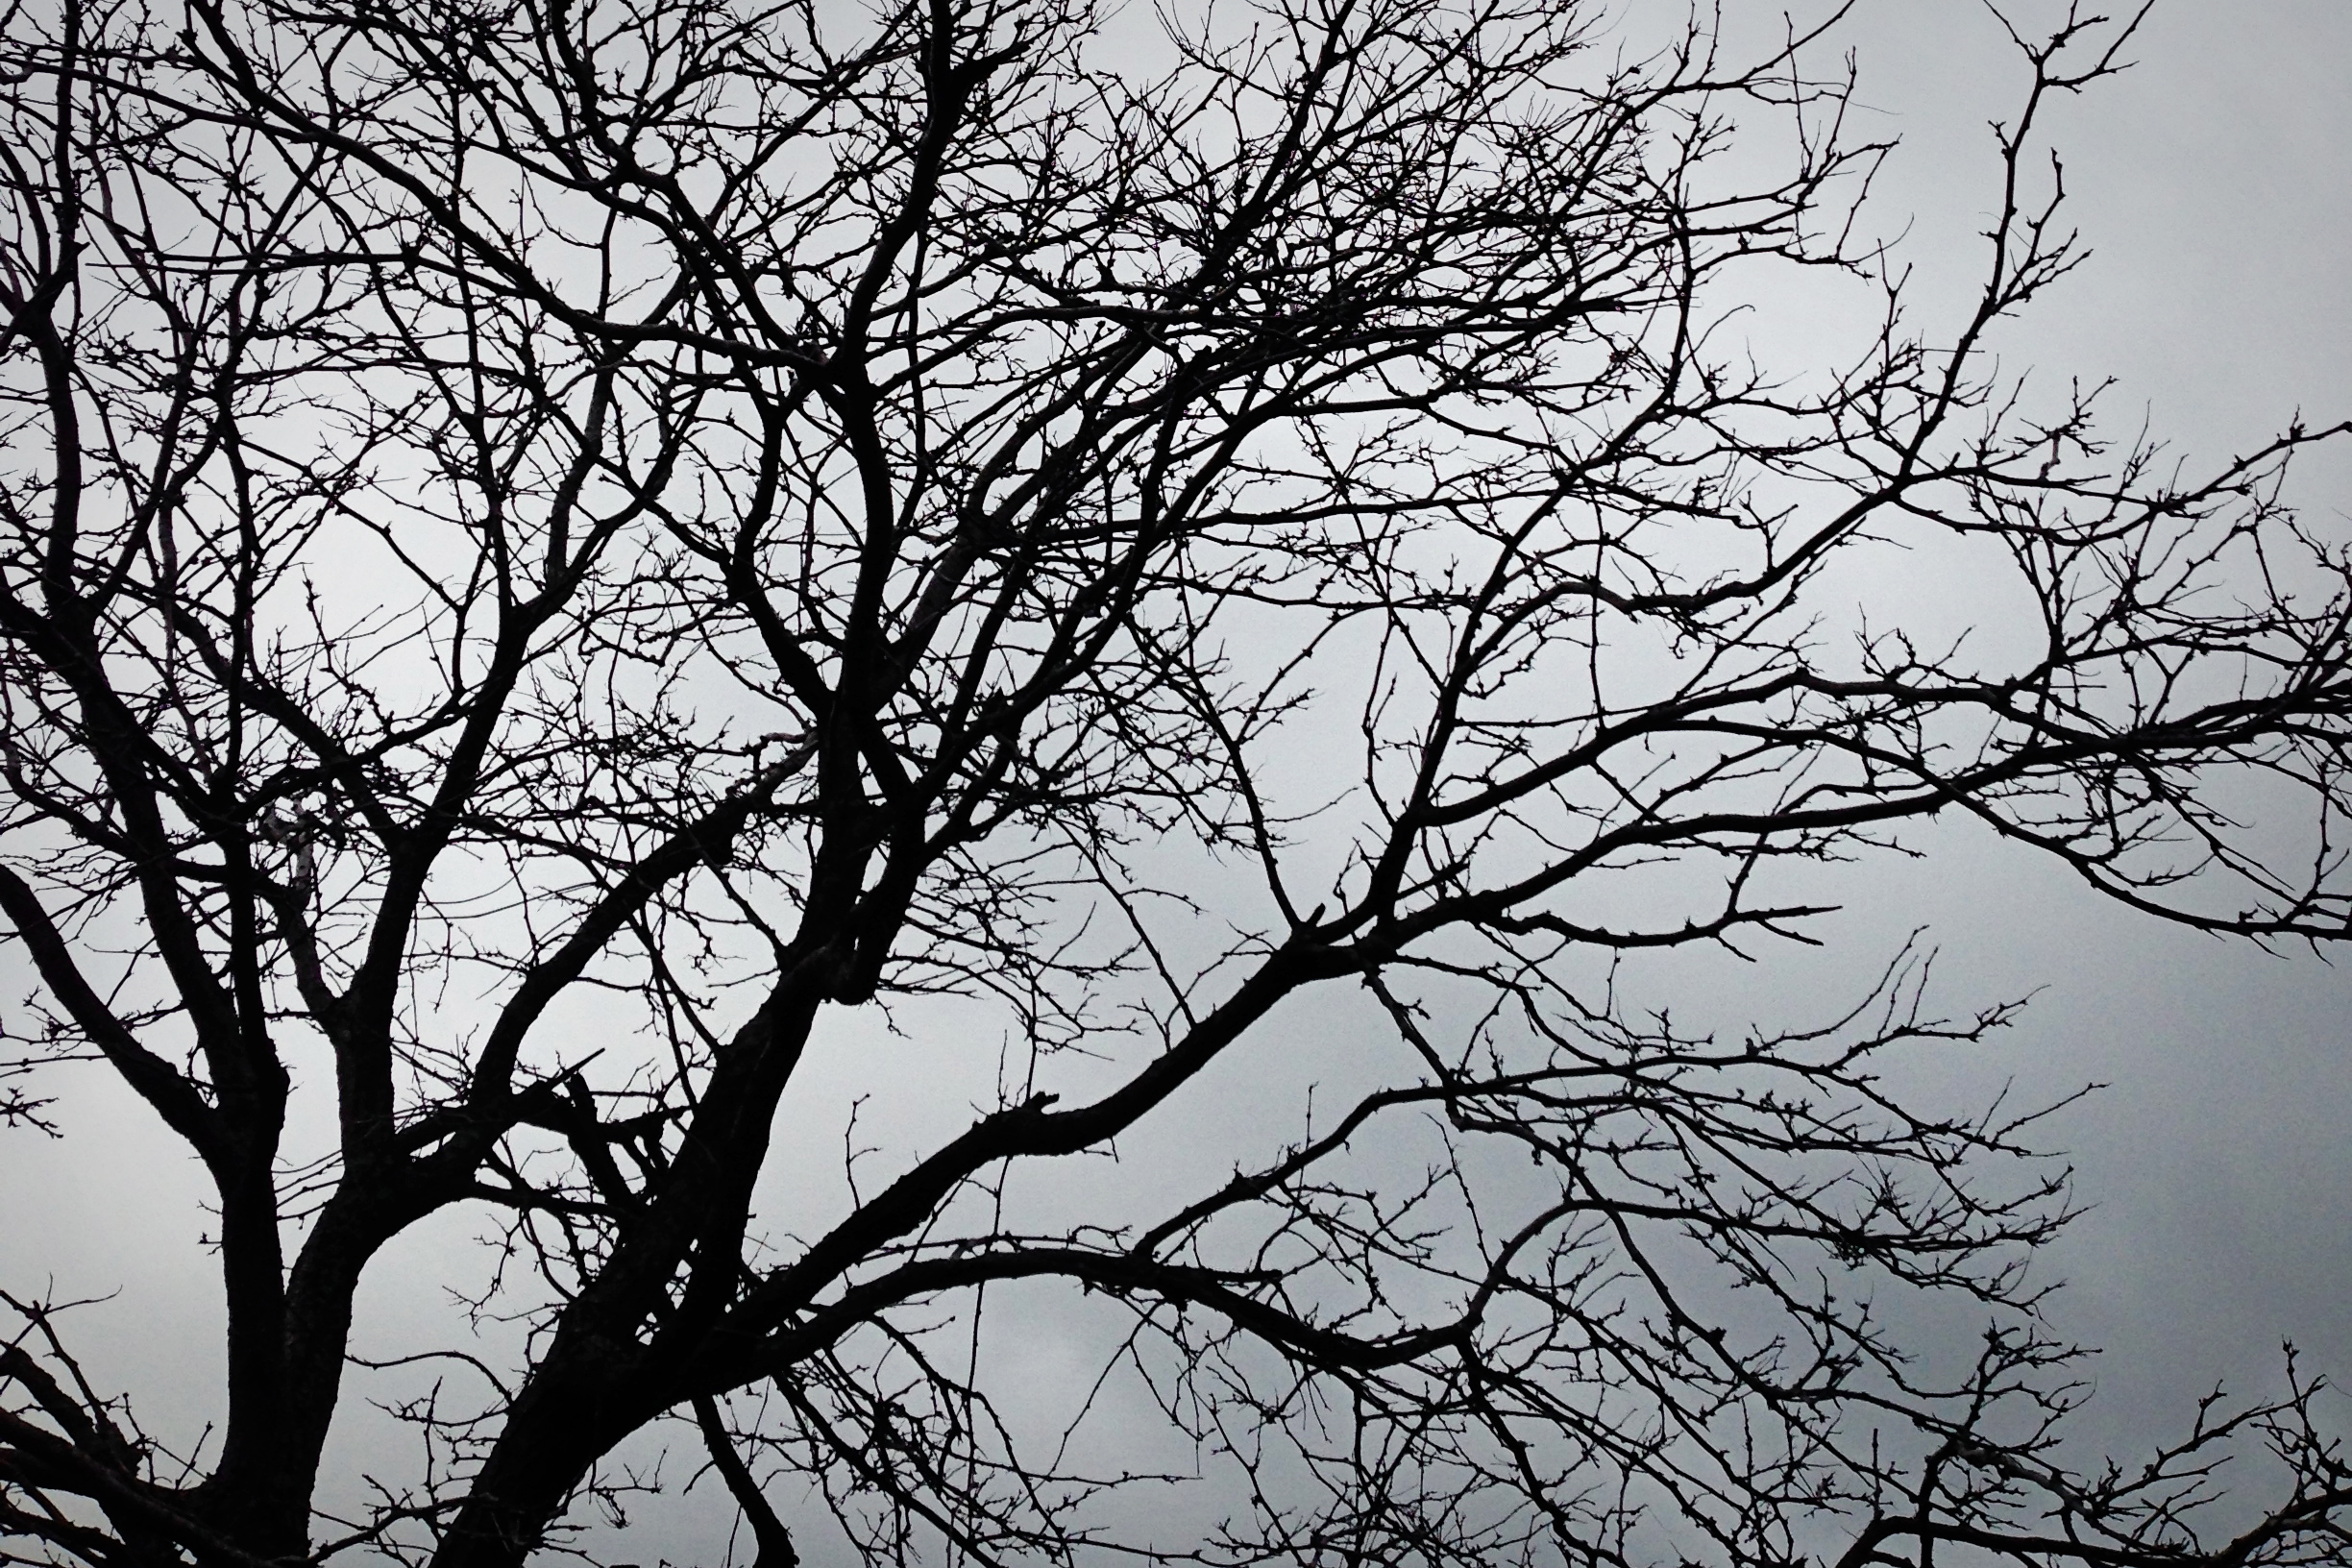 Cool Tree Black And White: Black And White Images Of Trees 16 Desktop Wallpaper